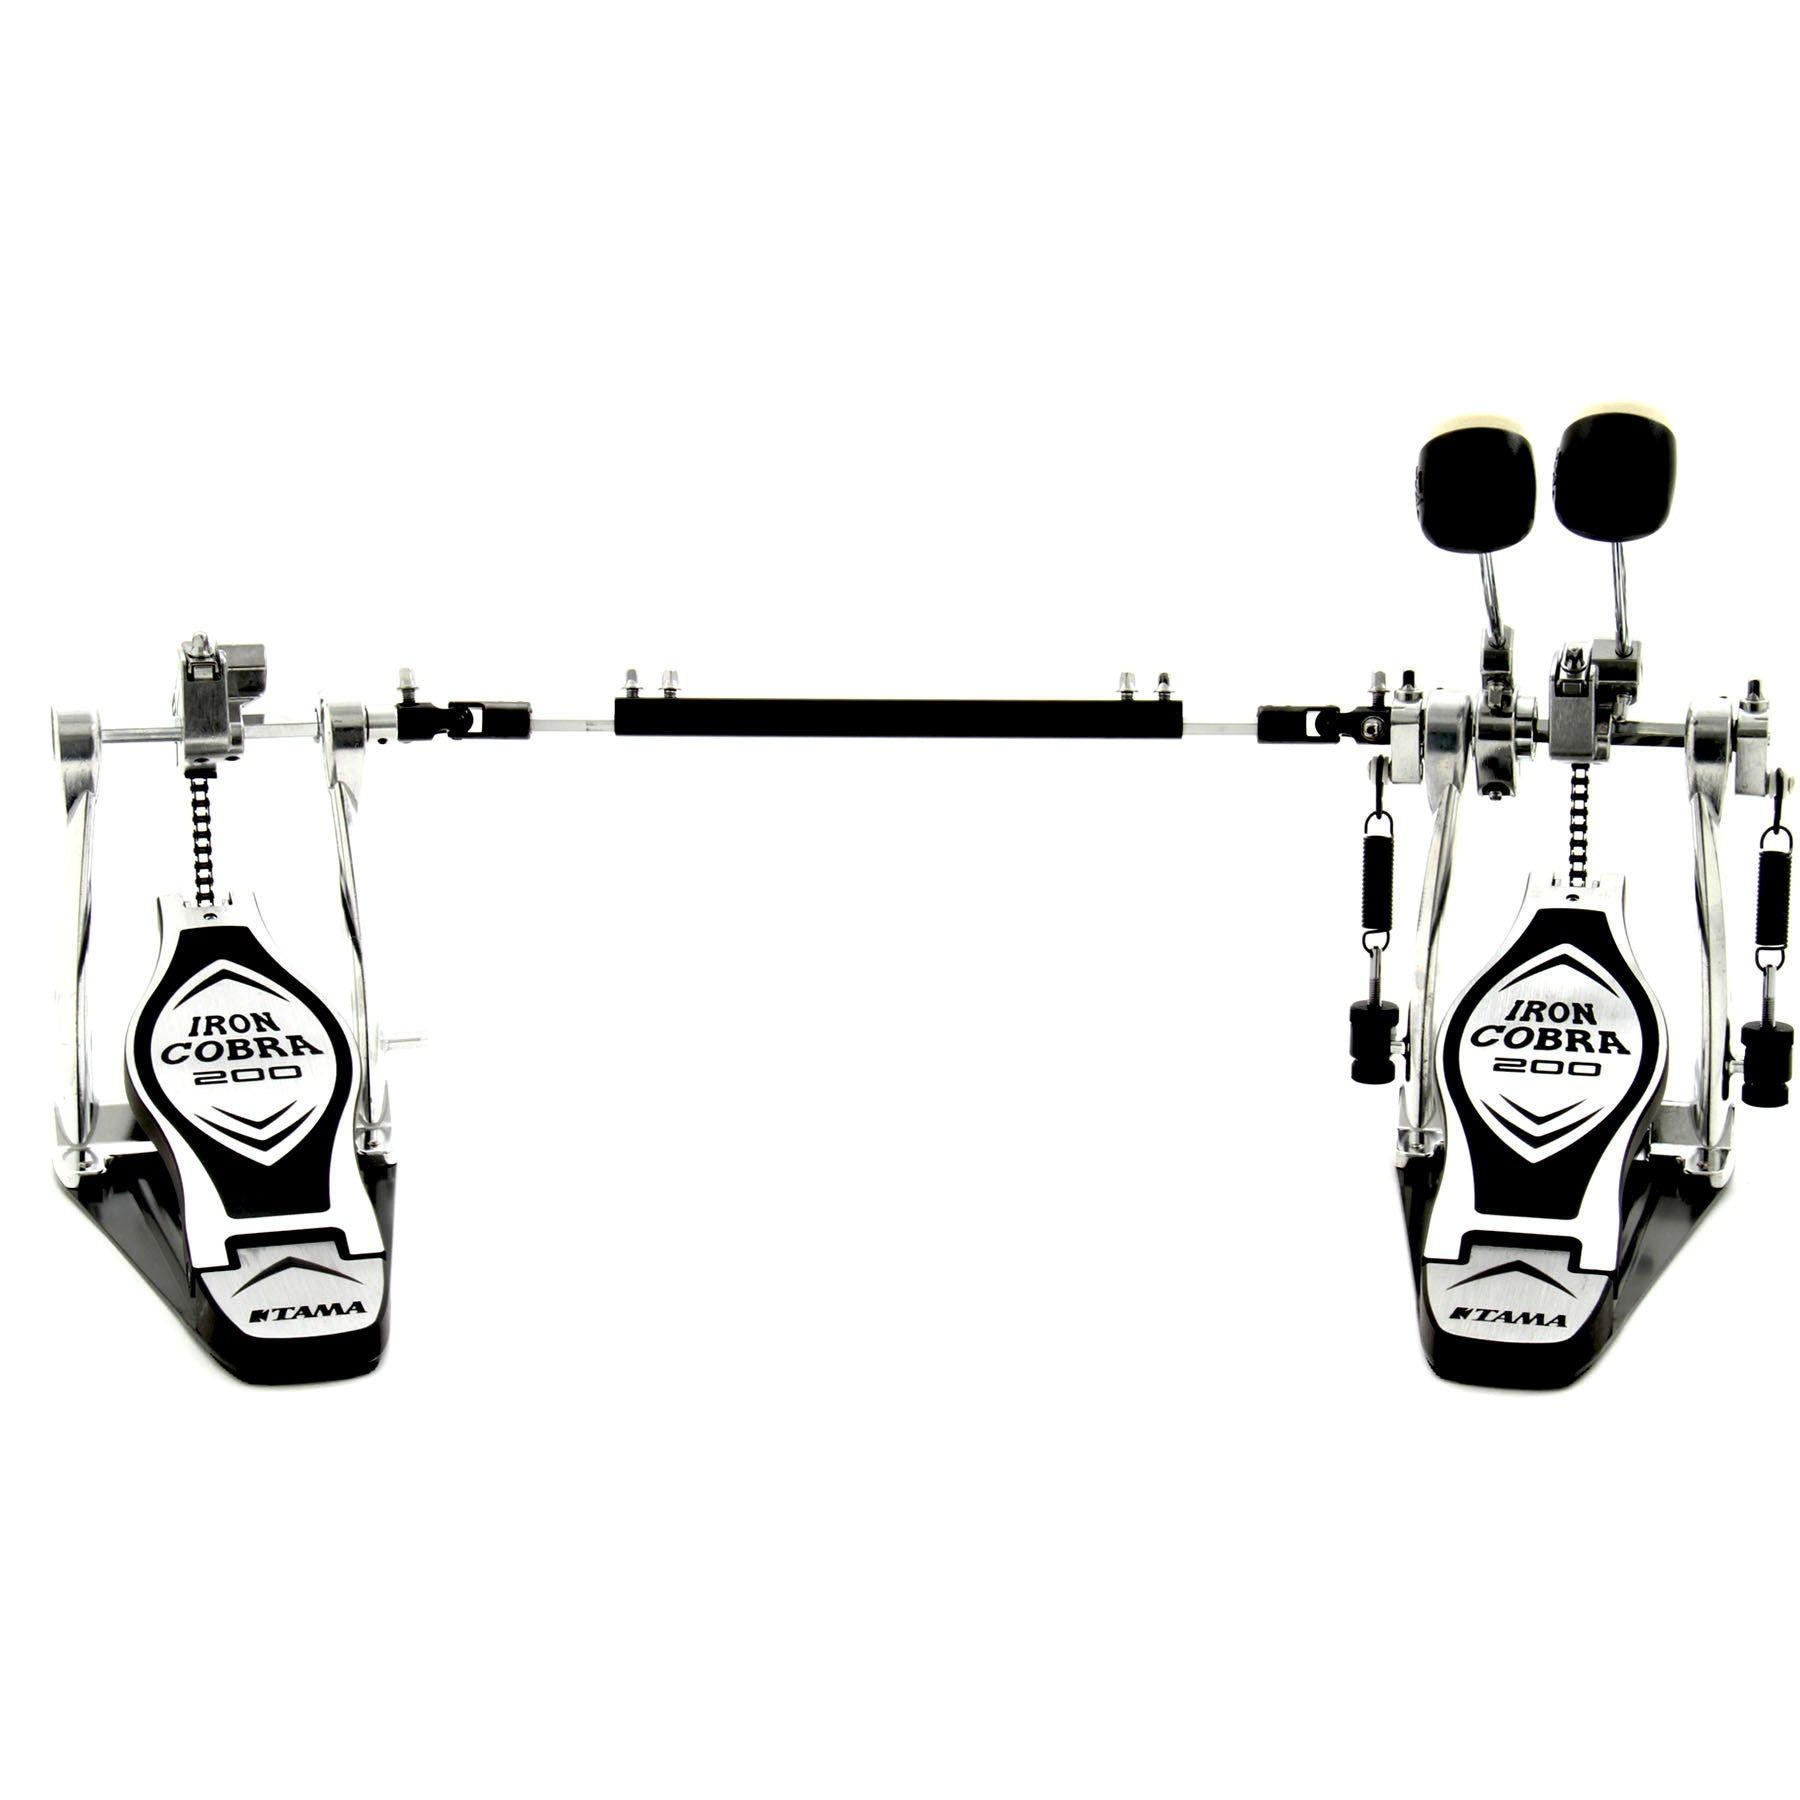 Shop online for Tama HP200PTW Iron Cobra 200 Double Pedal today. Now available for purchase from Midlothian Music of Orland Park, Illinois, USA